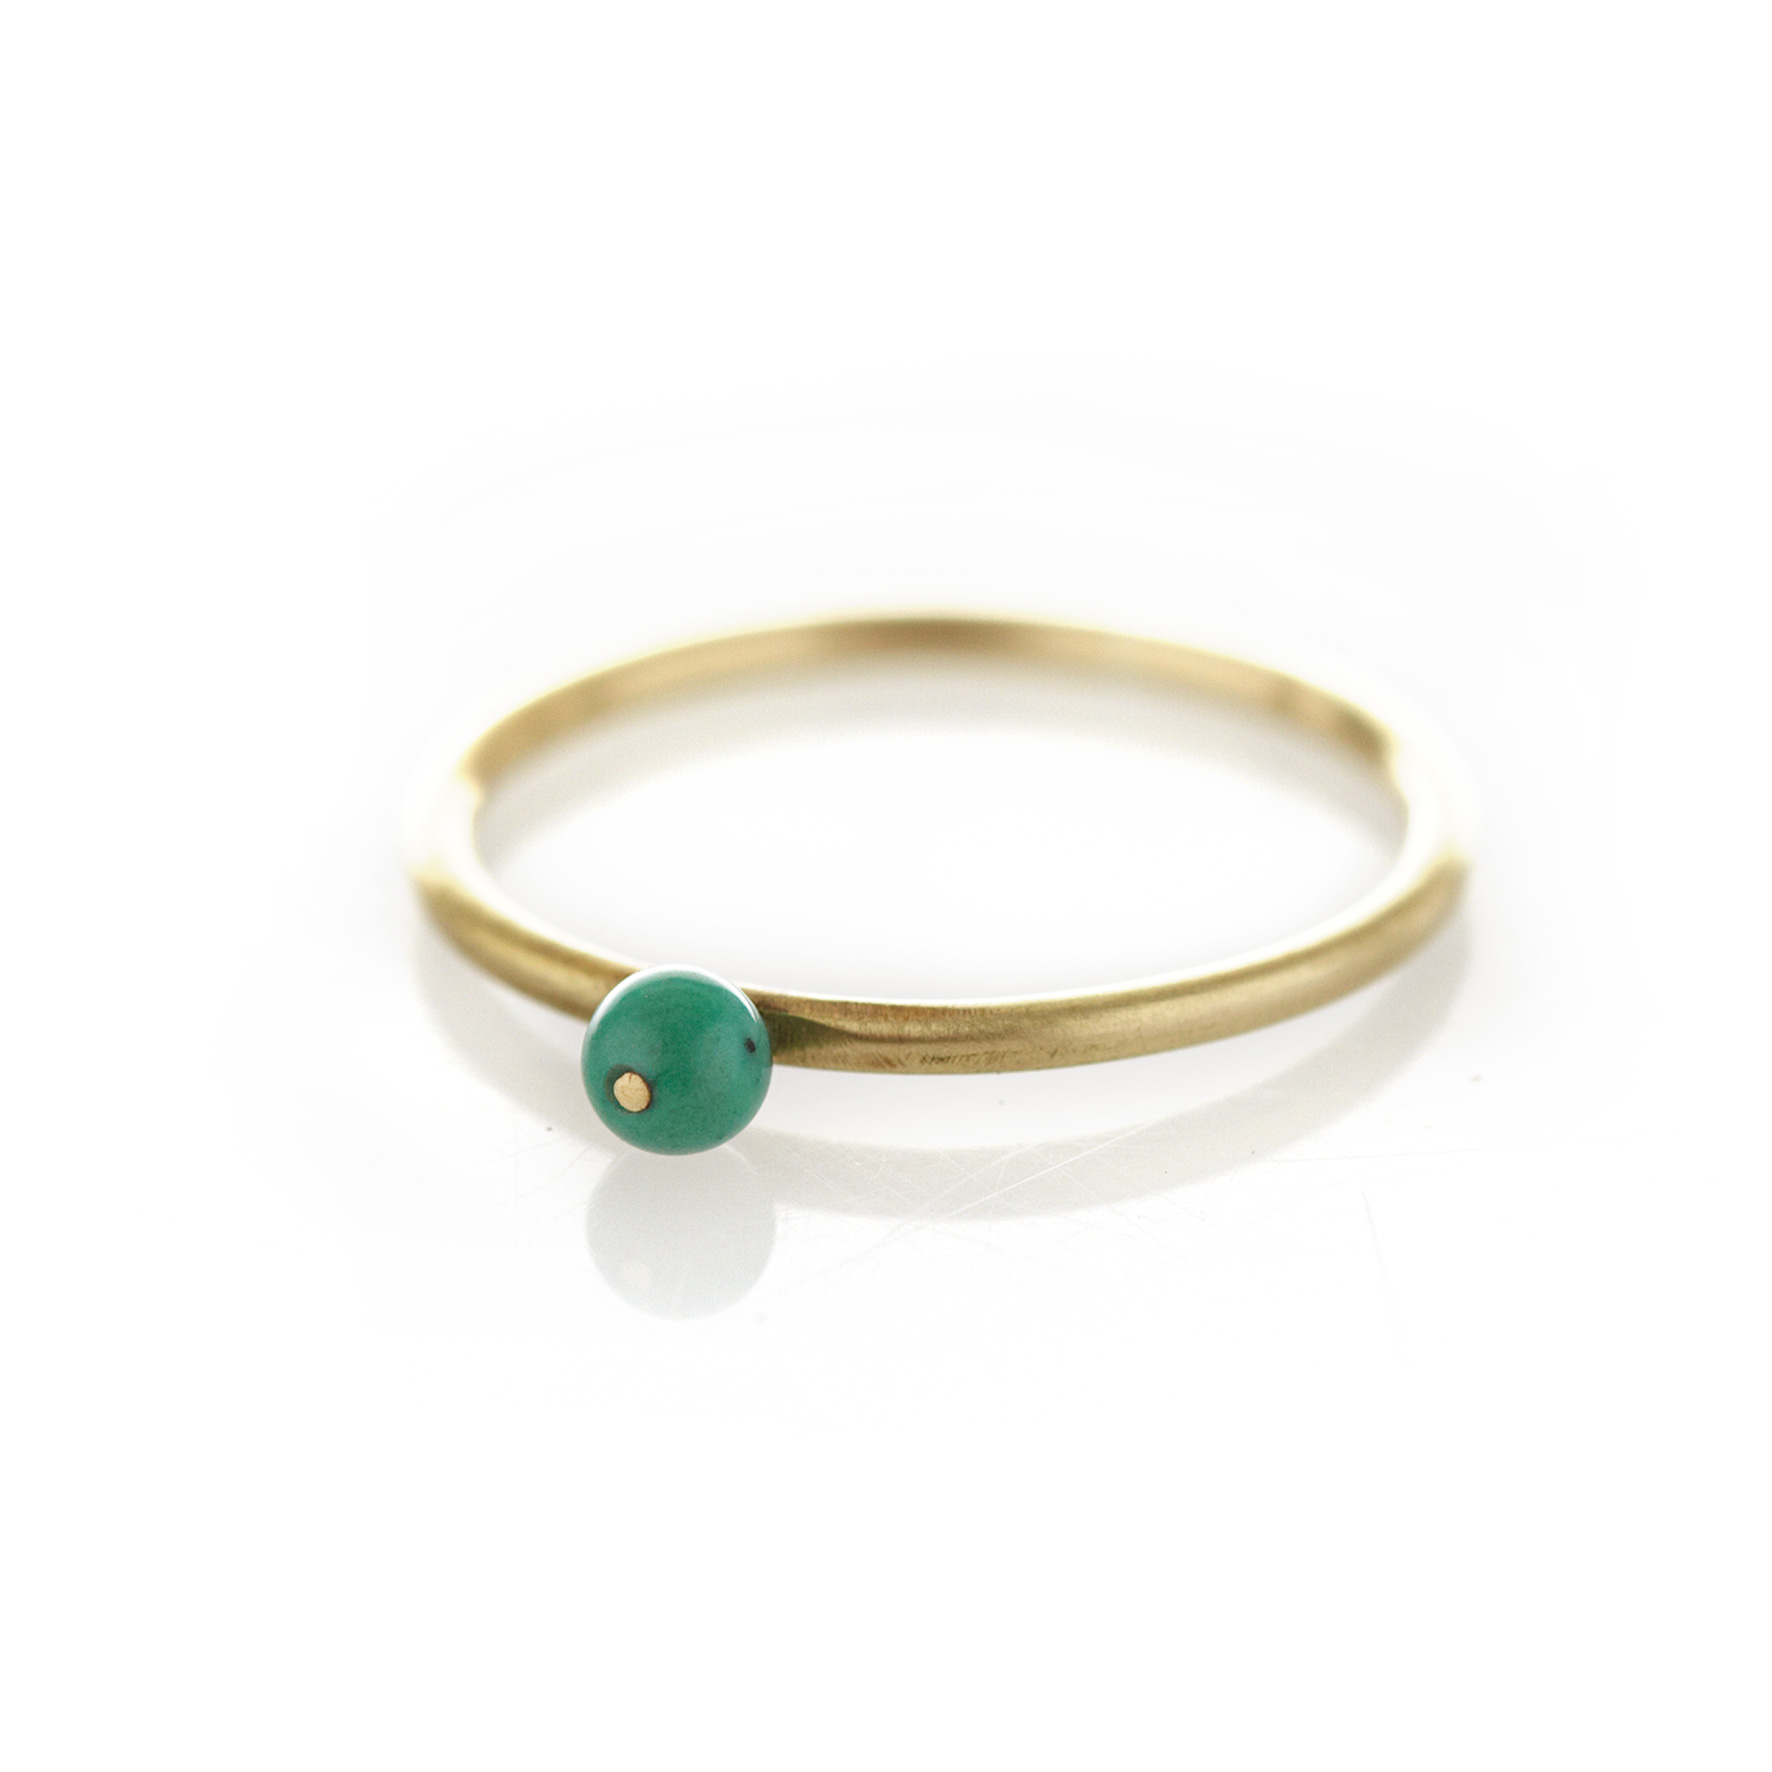 Turquoise brass ring